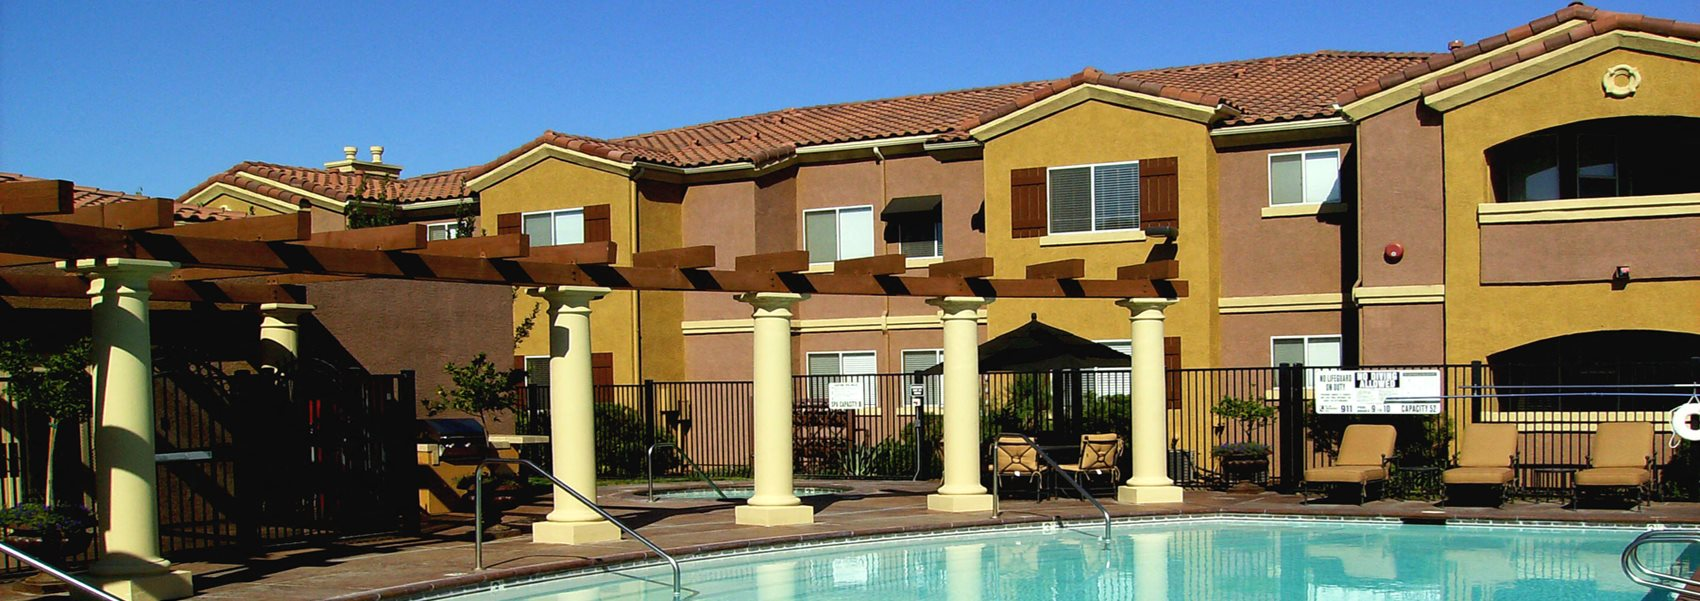 Elk Grove Apartments l Castellino at Lauga West Apartments